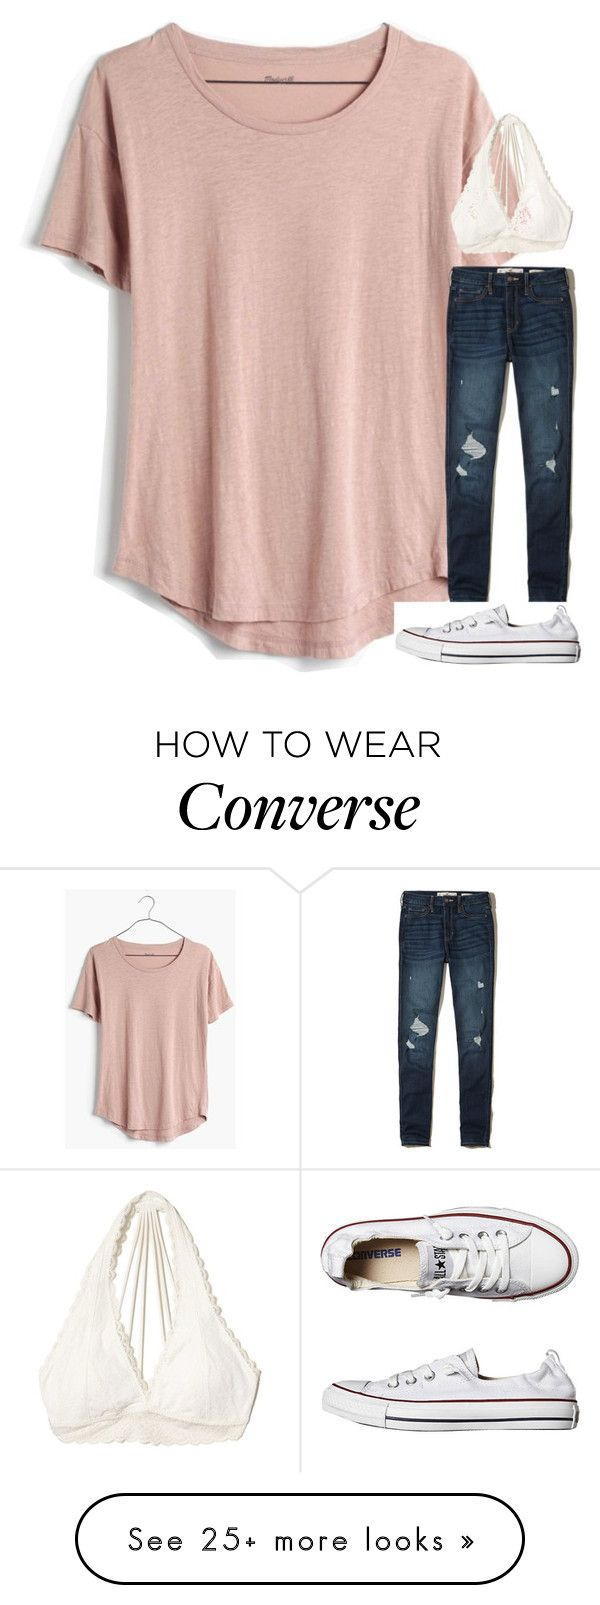 """""""Untitled #6517"""" by laurenatria11 on Polyvore featuring Madewell, Hollister Co. and Converse"""